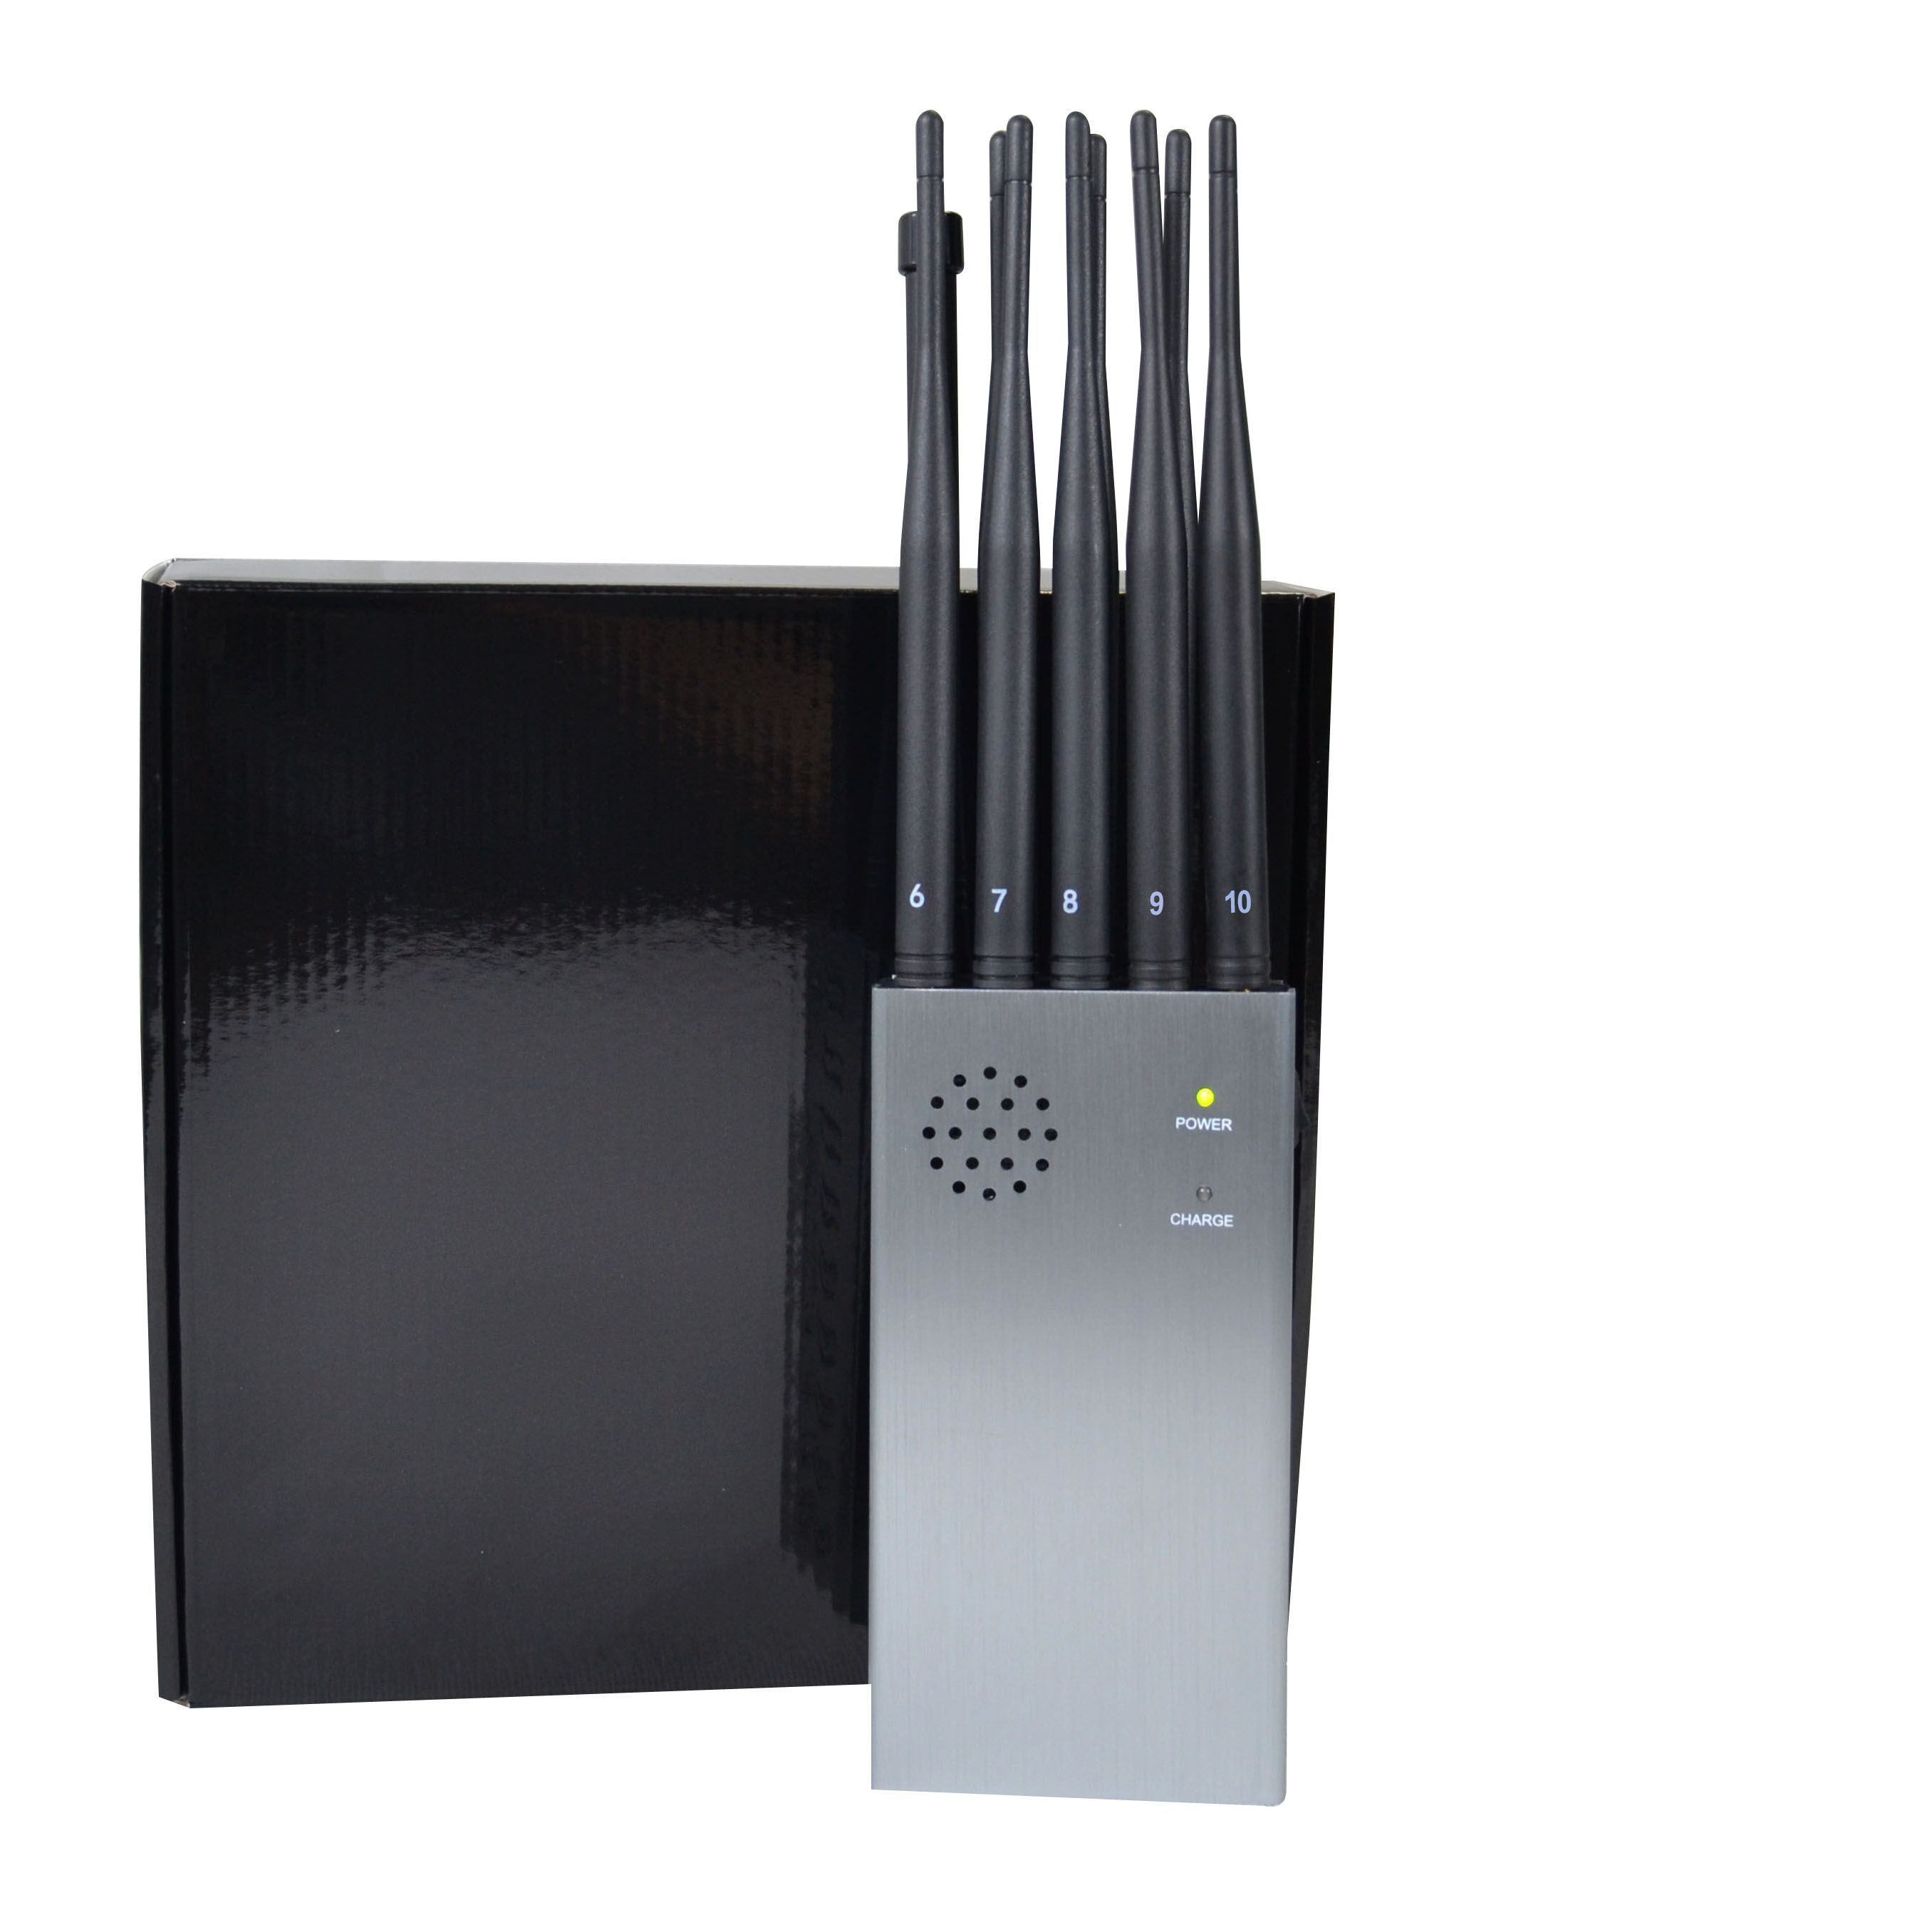 phone jammer remote email - China King Jammer with Portable 10 Antennas Including 2g 3G 5g 4G WiFi, GPS Remote Control Lojack Signals - China 8000mA Battery Jammer, Large Volume Power Signal Blocker